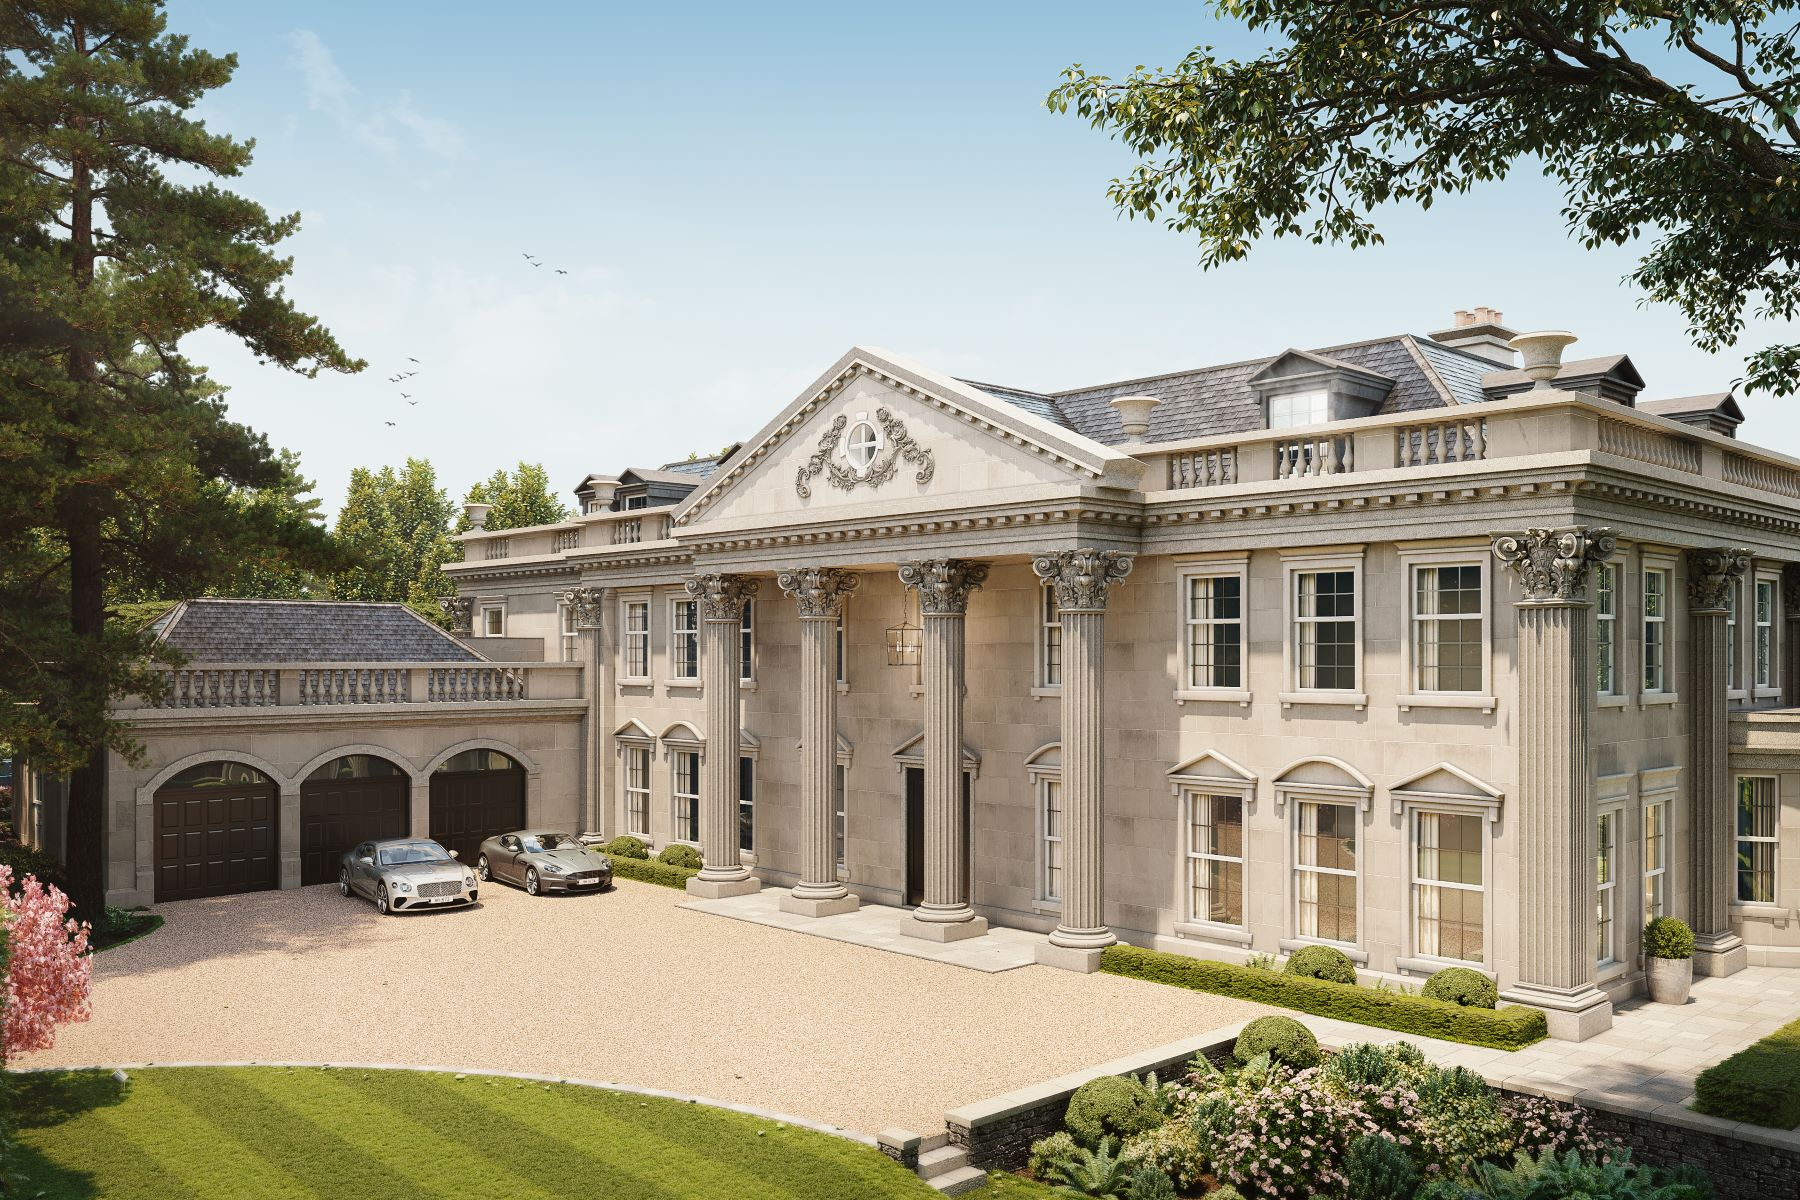 Single Family Homes for Sale at Hampton Hall Queens Drive Oxshott, England KT22 0PB United Kingdom